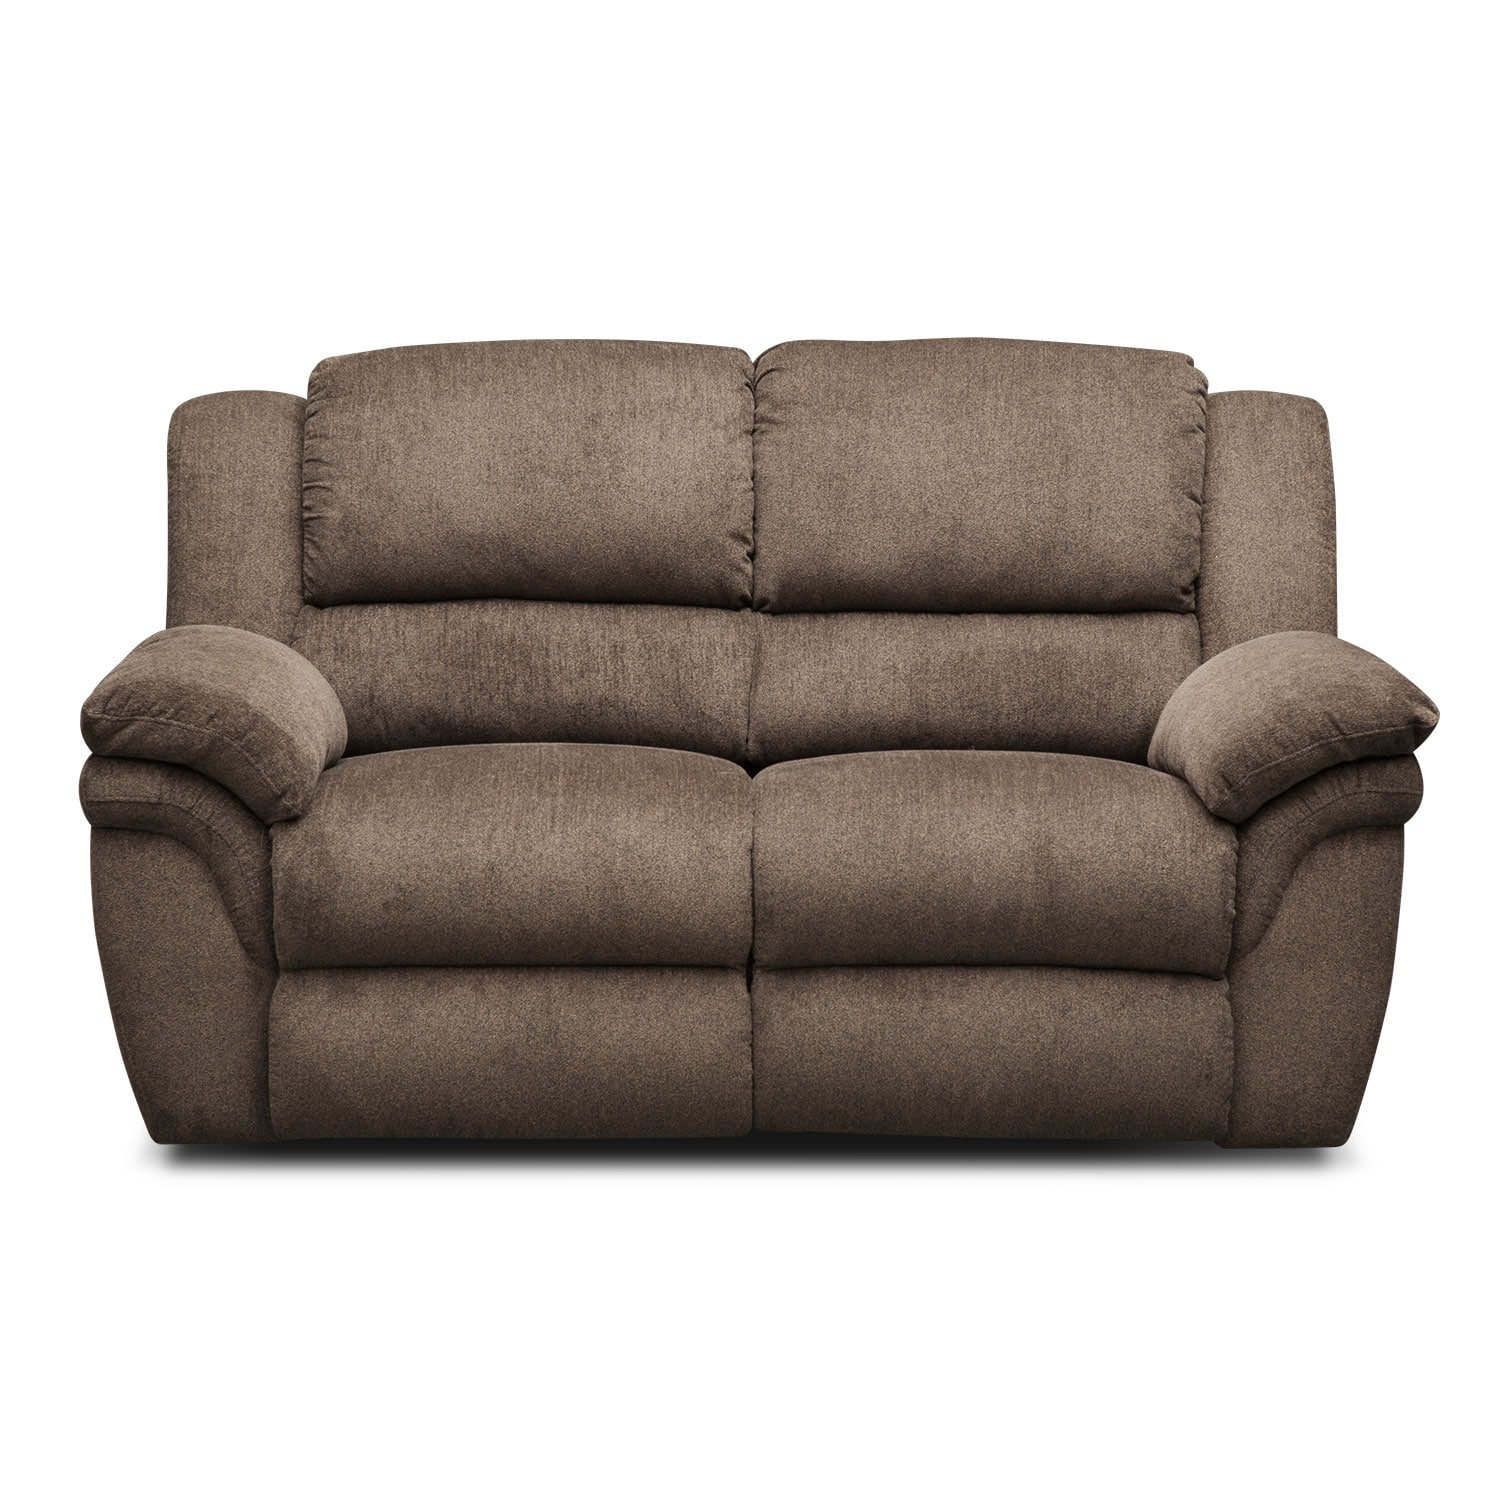 Hurry Up For Your Best Cheap Sofas On Sale: Aldo Manual Reclining Loveseat - Mocha